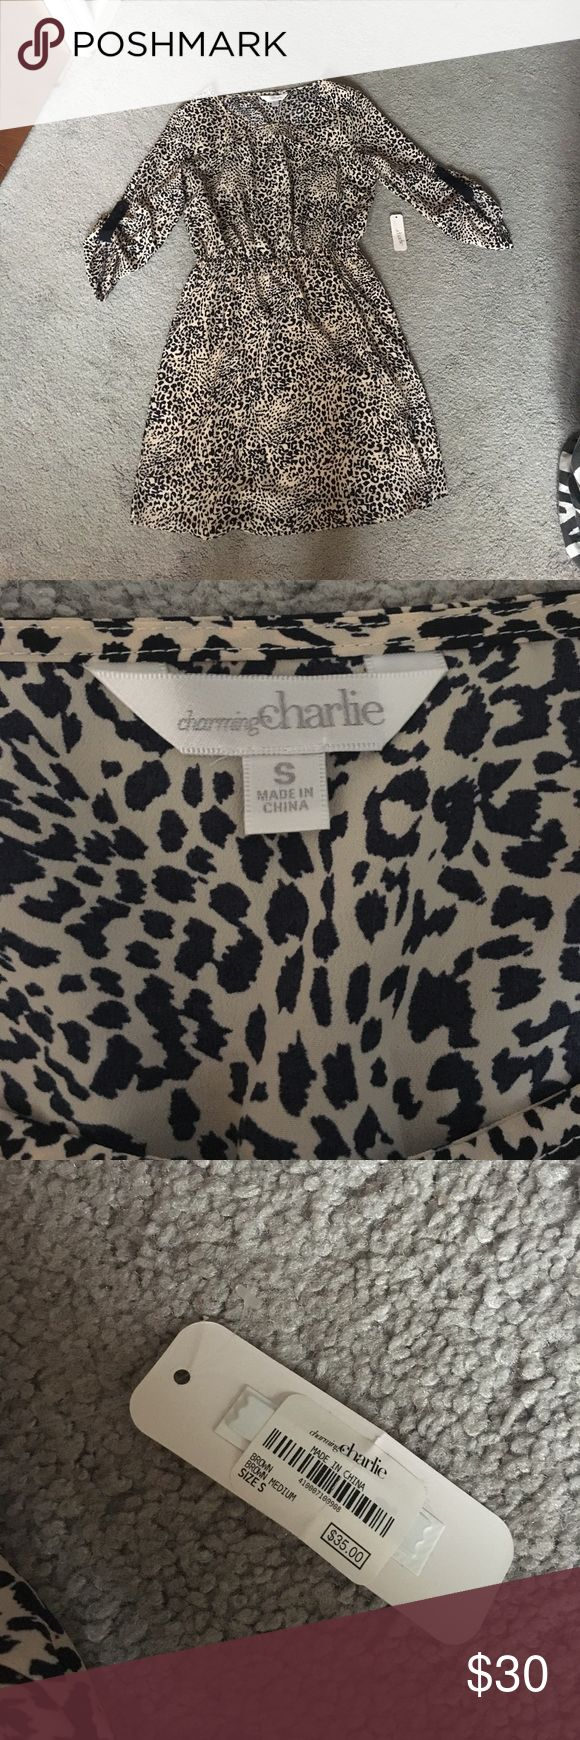 BNWT Charming Charlie Cheetah Print Dress! BNWT Charming Charlie Cheetah Print Dress! Size Small. 100% Polyester. Excellent condition, only worn to try on. Extra button comes on the inside slip (pictured). Comes from a pet free, smoke free home! Charming Charlie Dresses